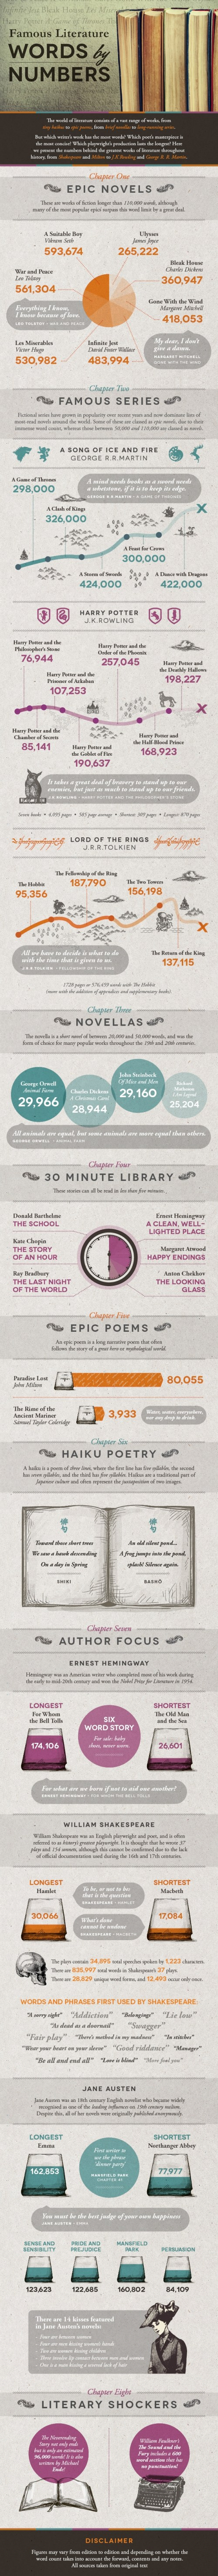 Infographic: How Long is that Novel? Infographic